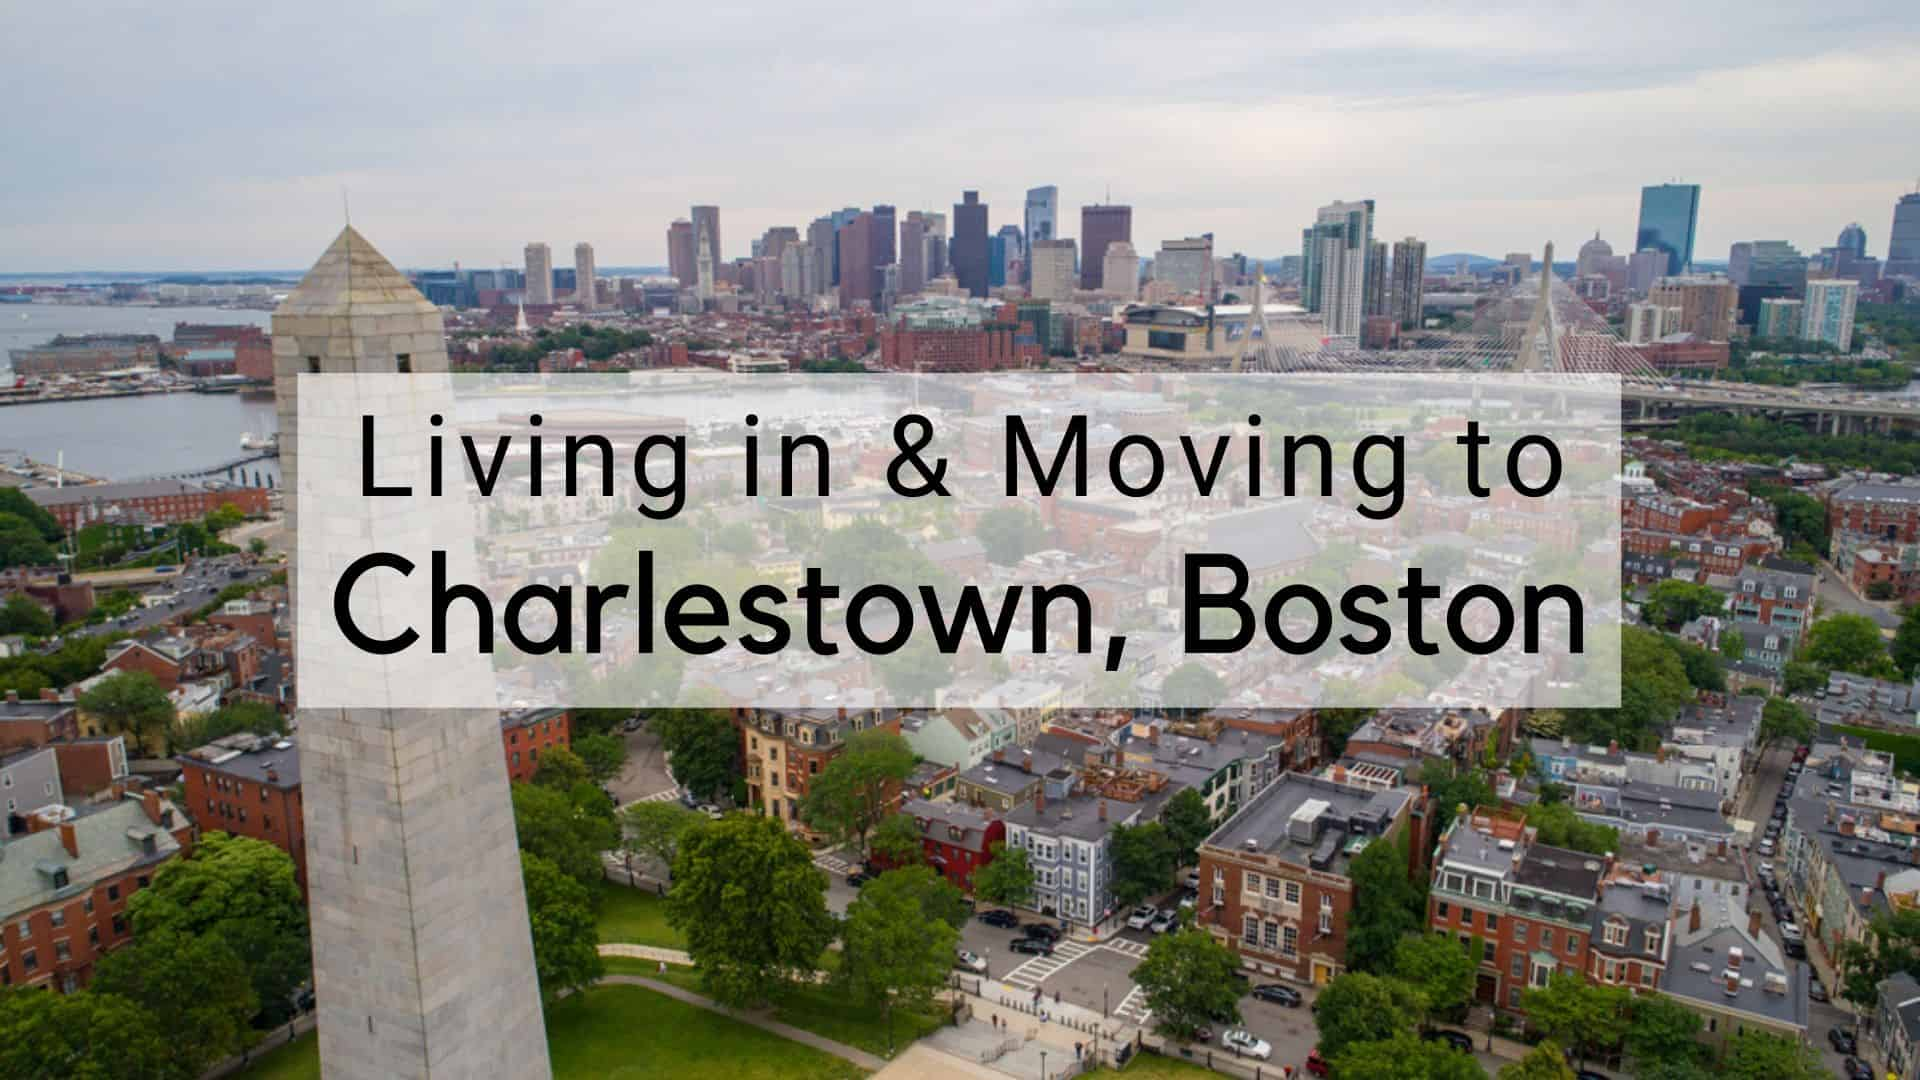 Living in & Moving to Charlestown, Boston